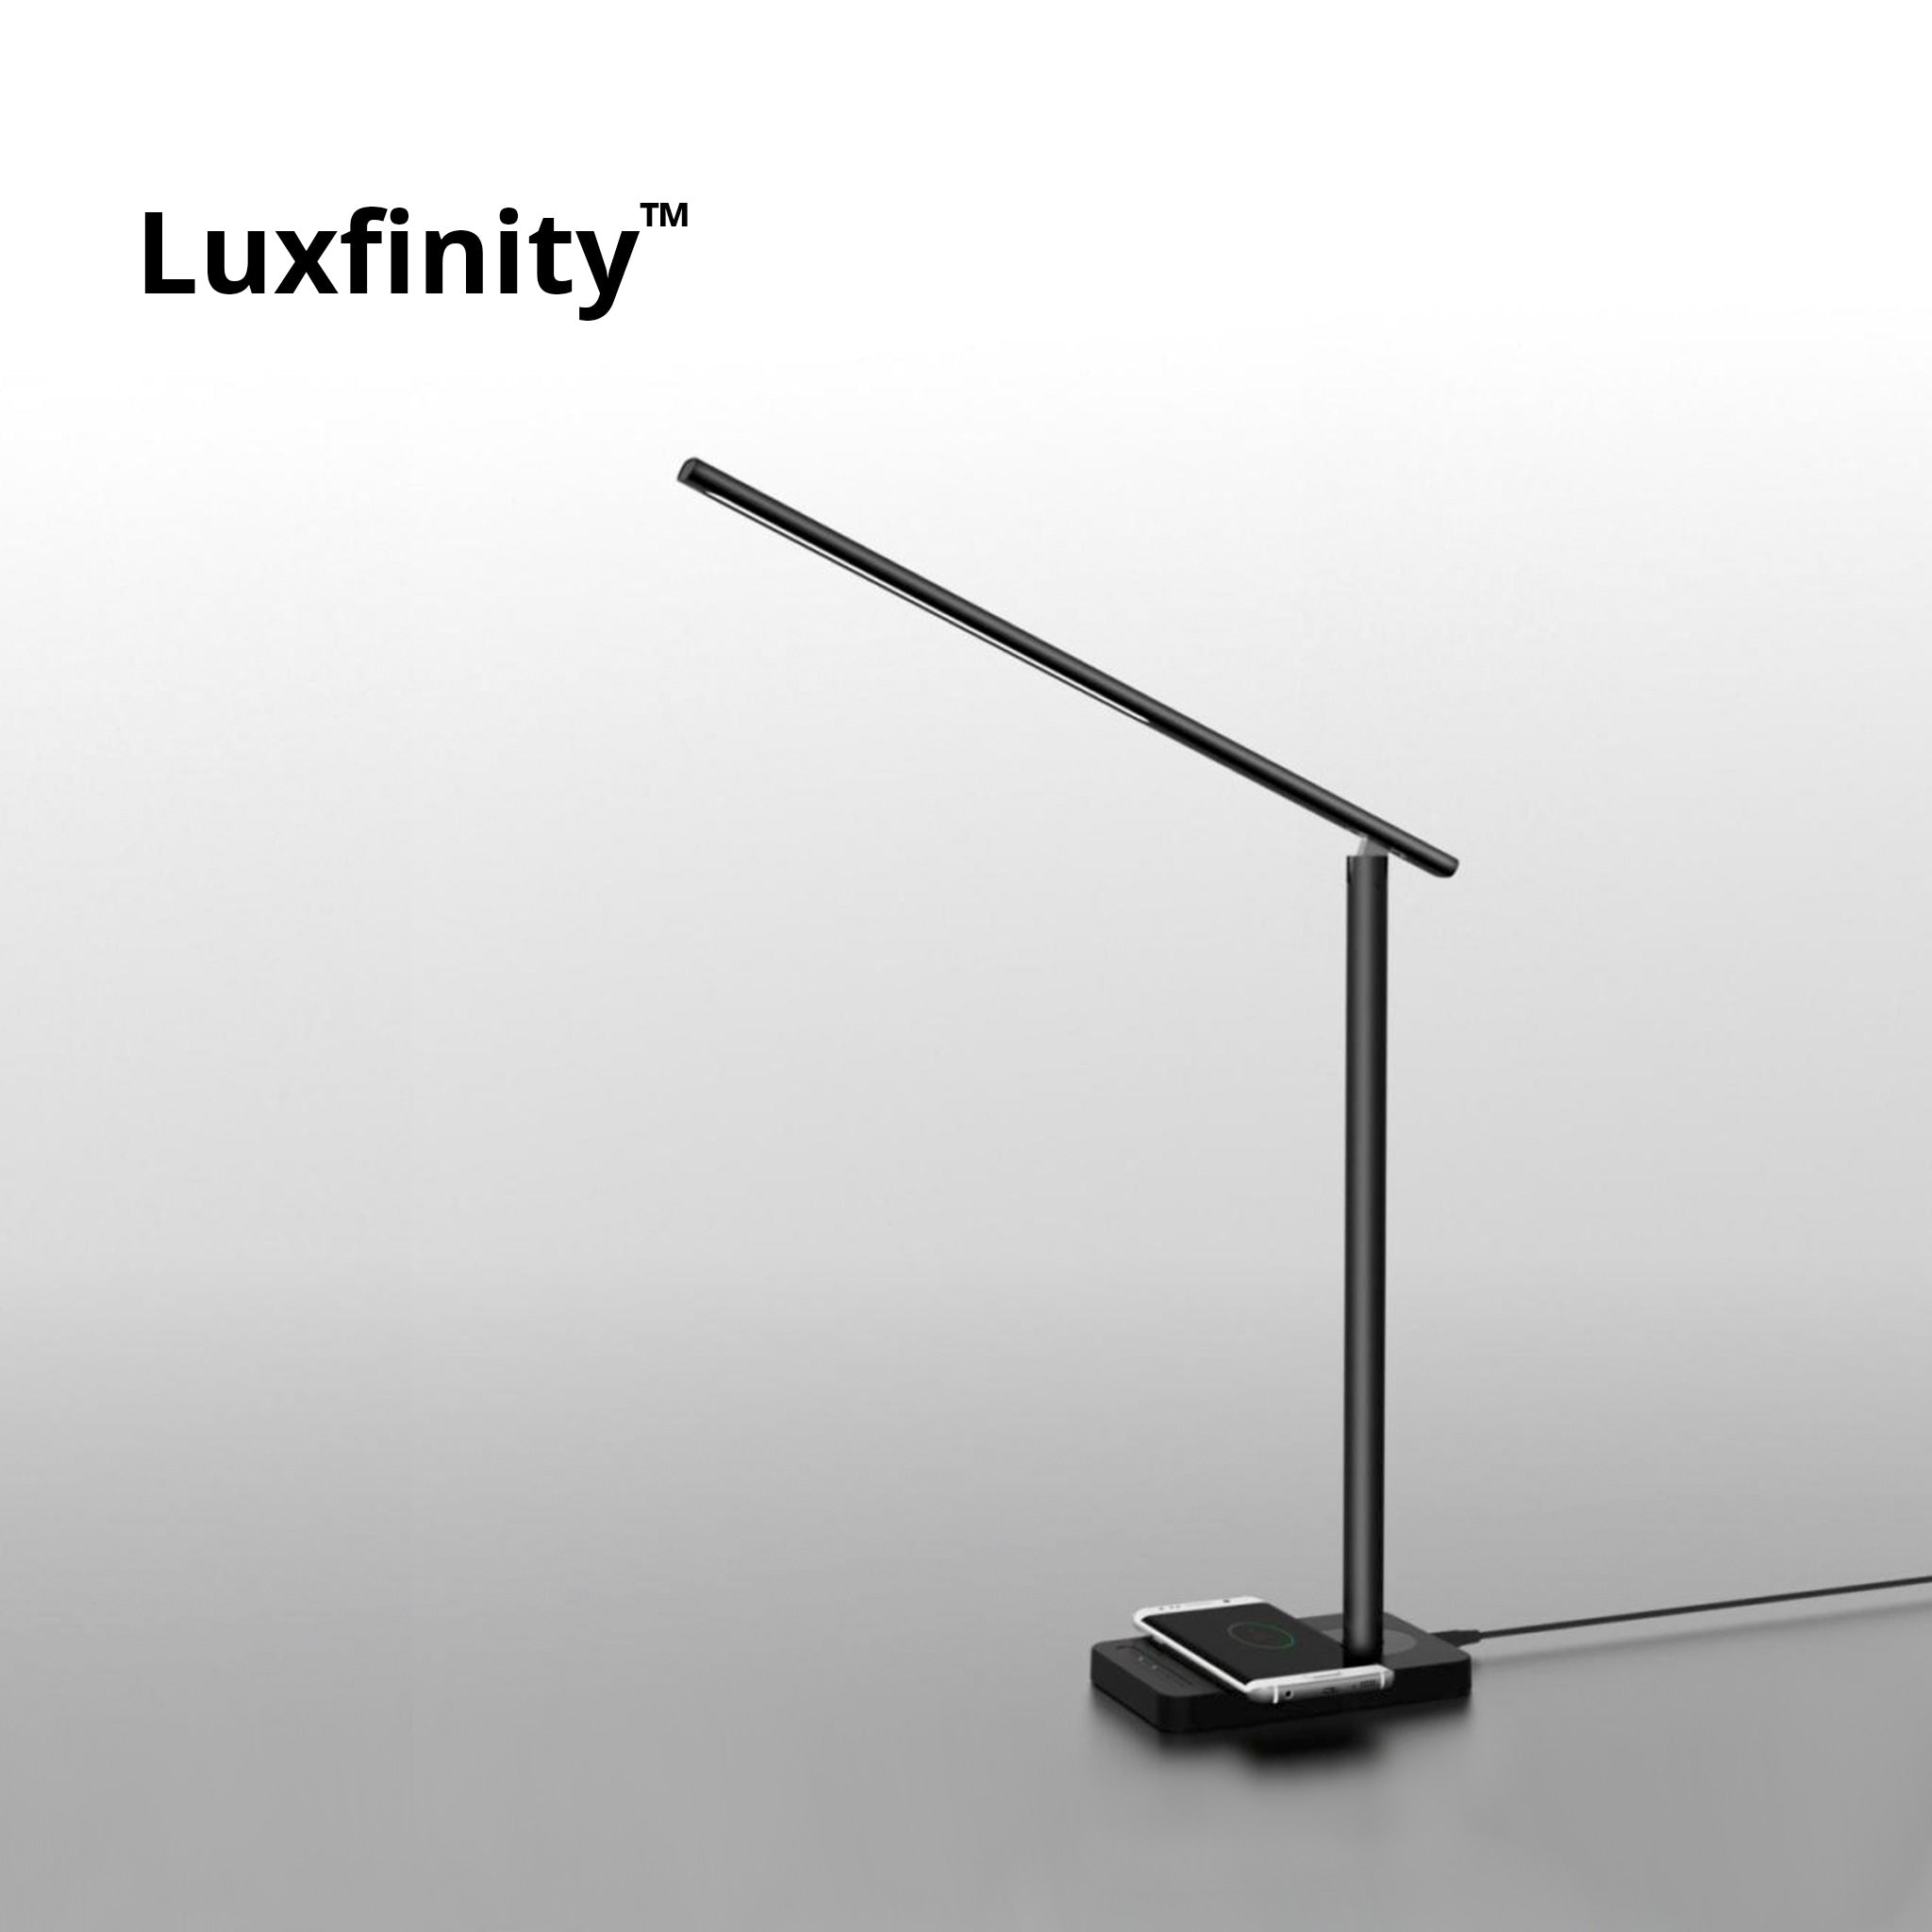 lamp desk light pro ltd led designer next black luctra linear shop position table app radial w